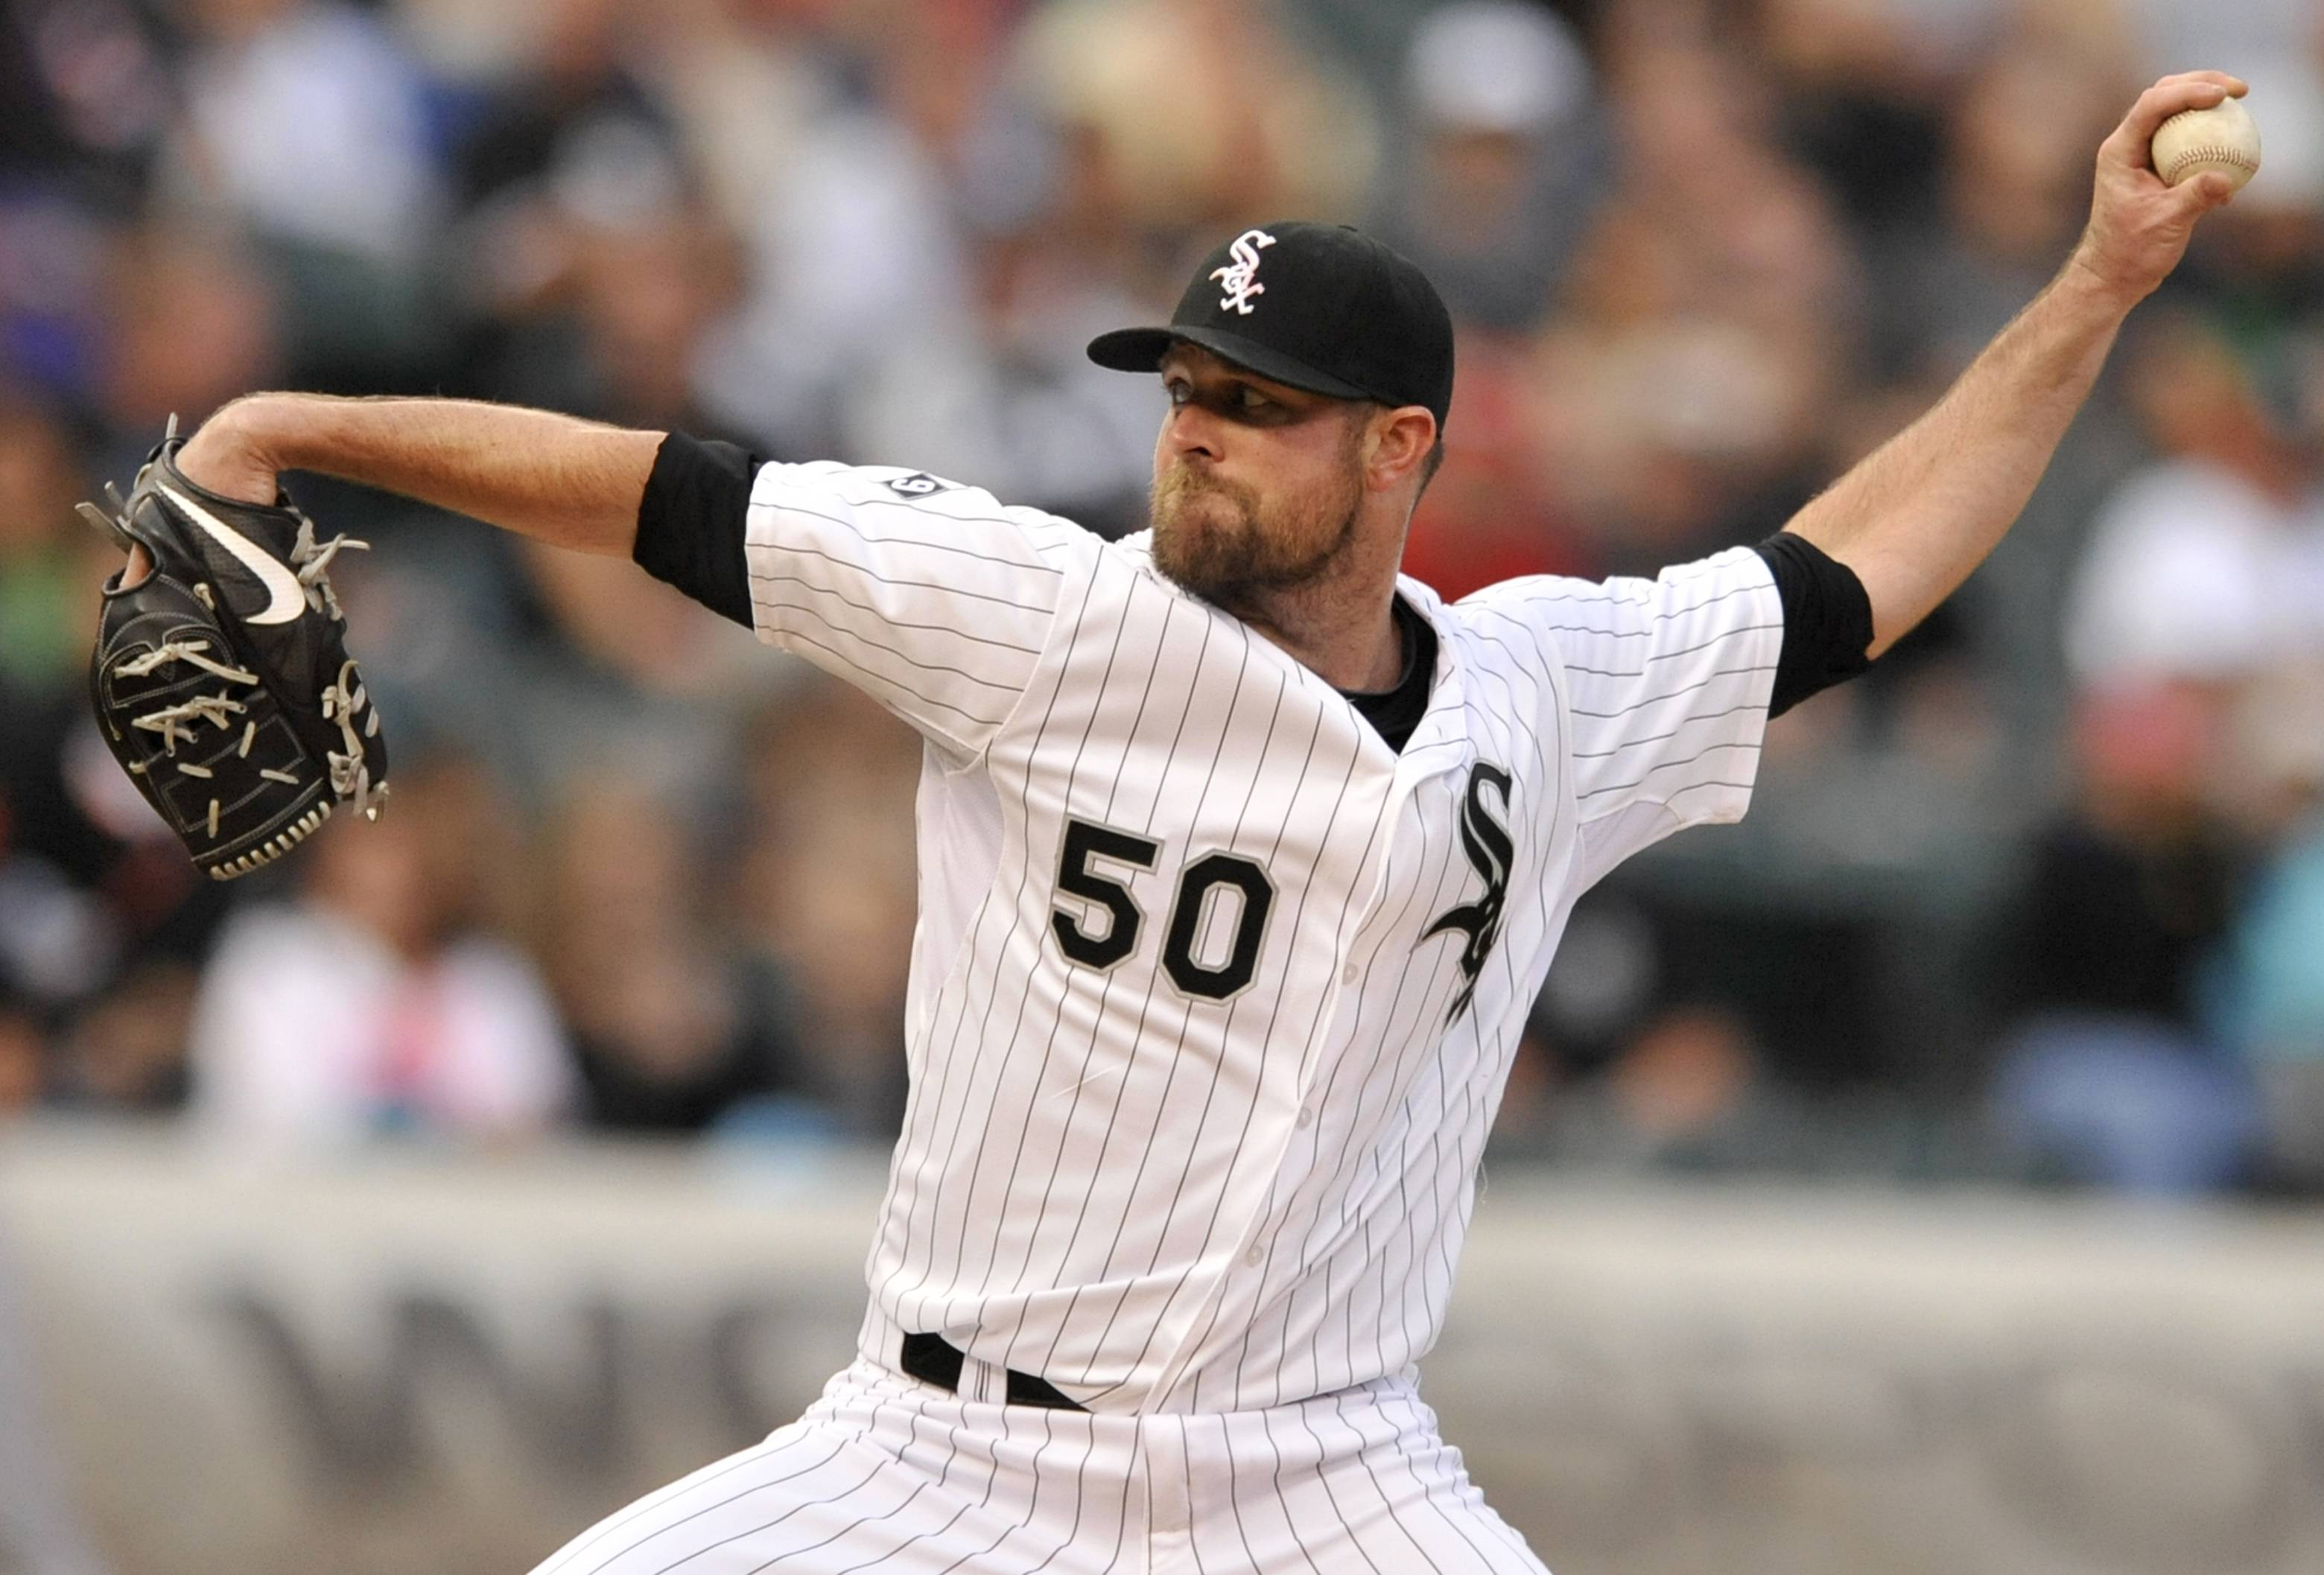 Chicago White Sox starter John Danks delivers a pitch during the first inning of a baseball game against the Baltimore Orioles on Friday, July 3, 2015, in Chicago.